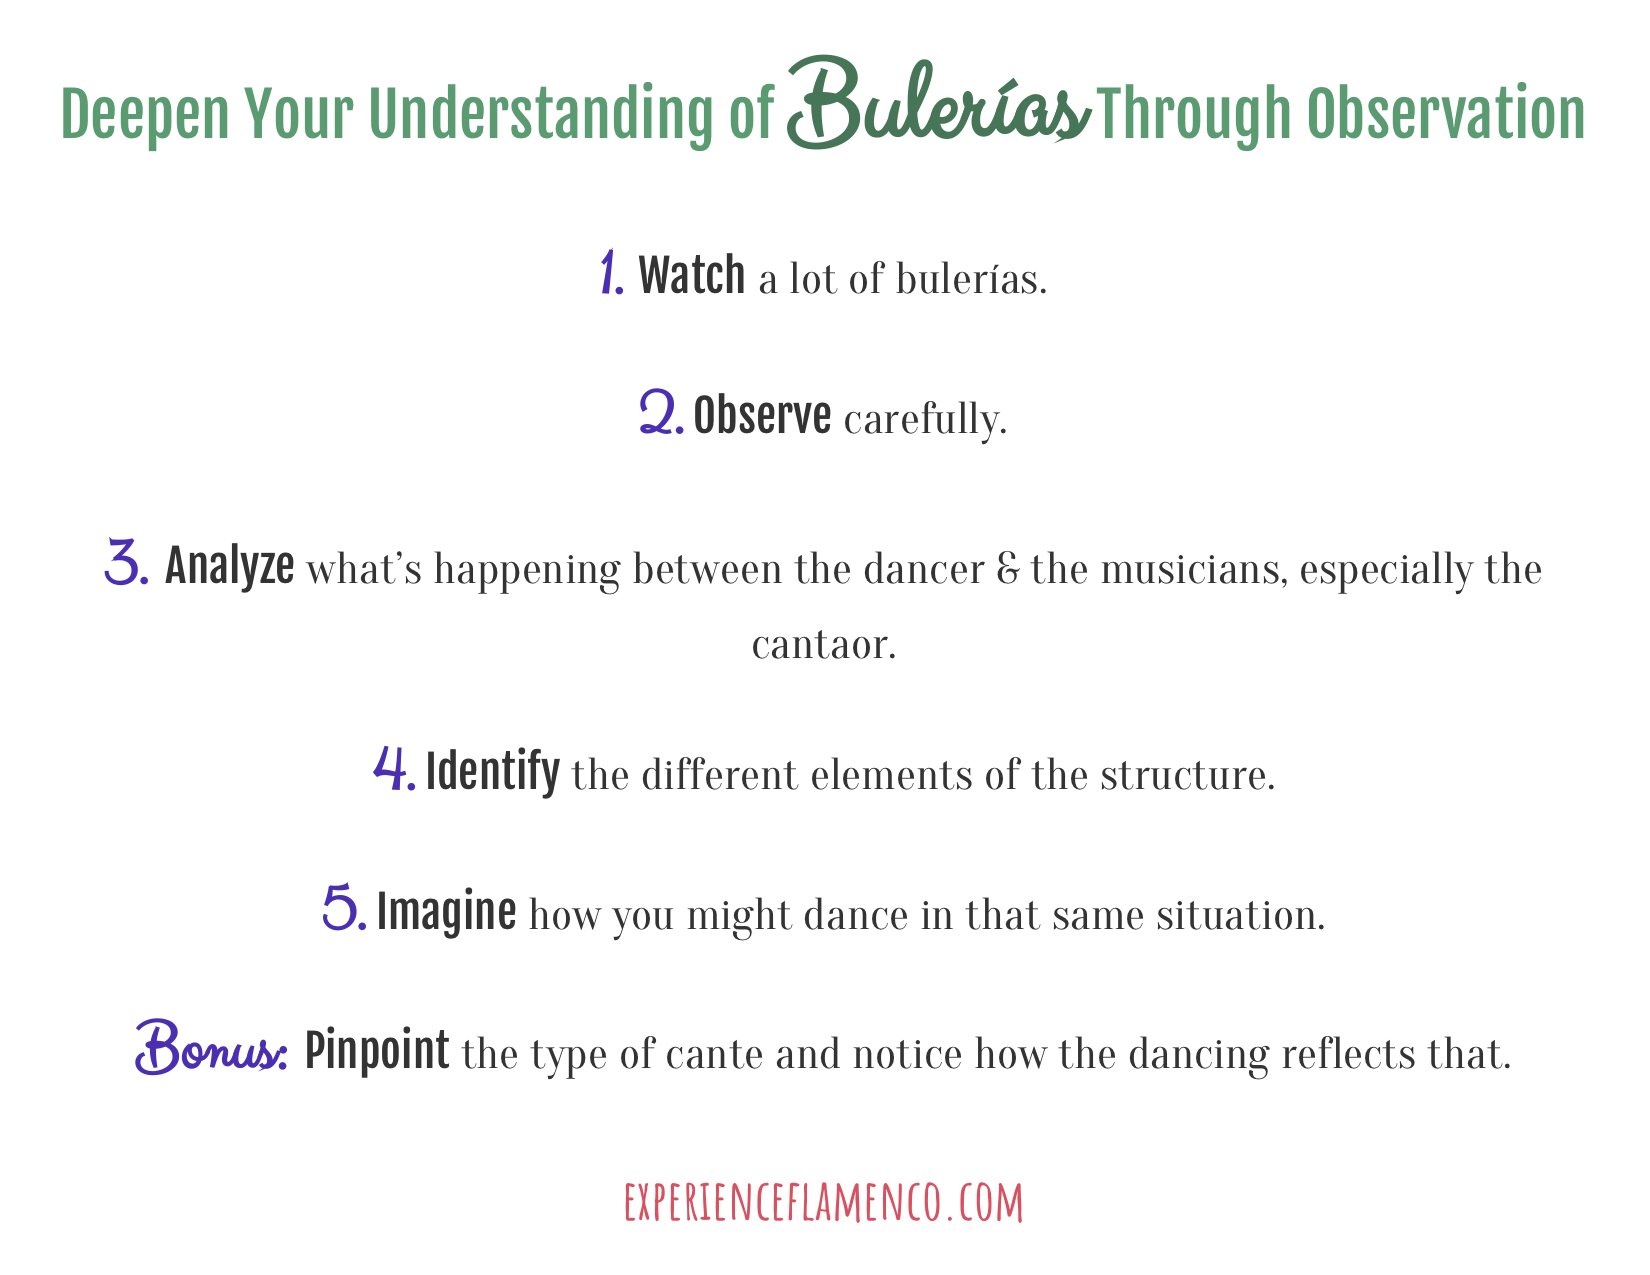 Deepen your understanding of bulerias through observation